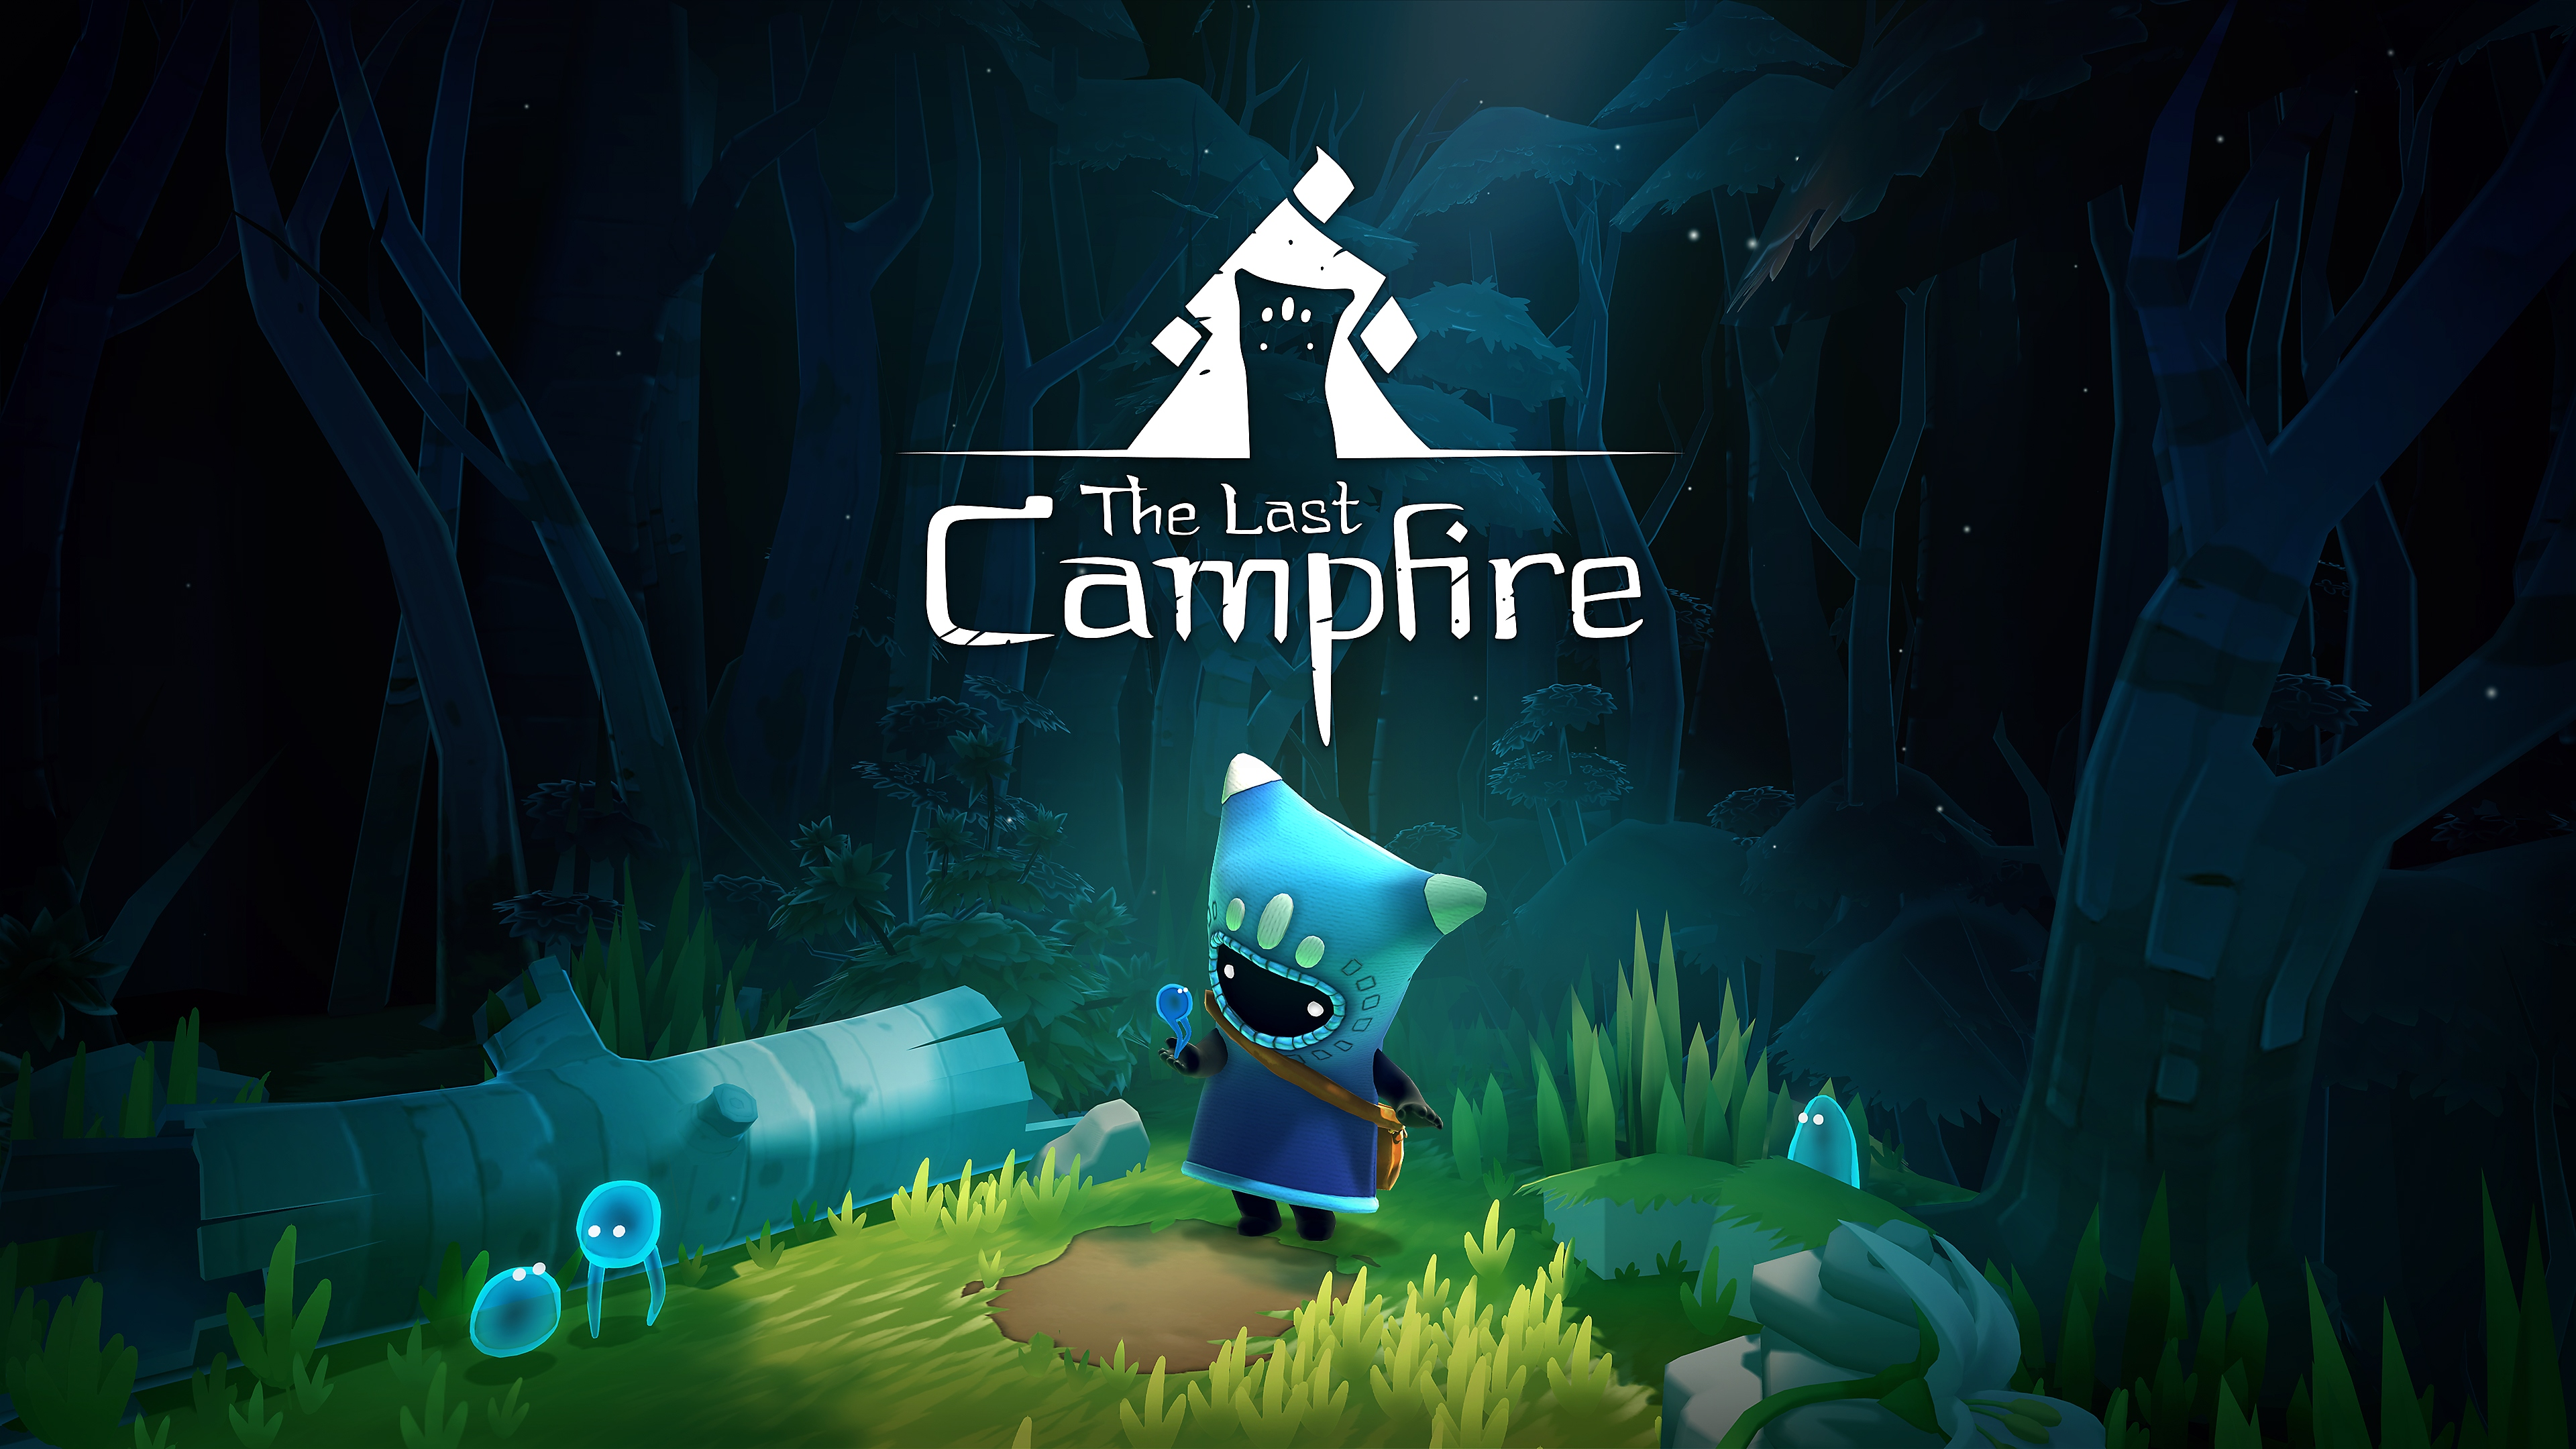 『The Last Campfire』 プレイ動画